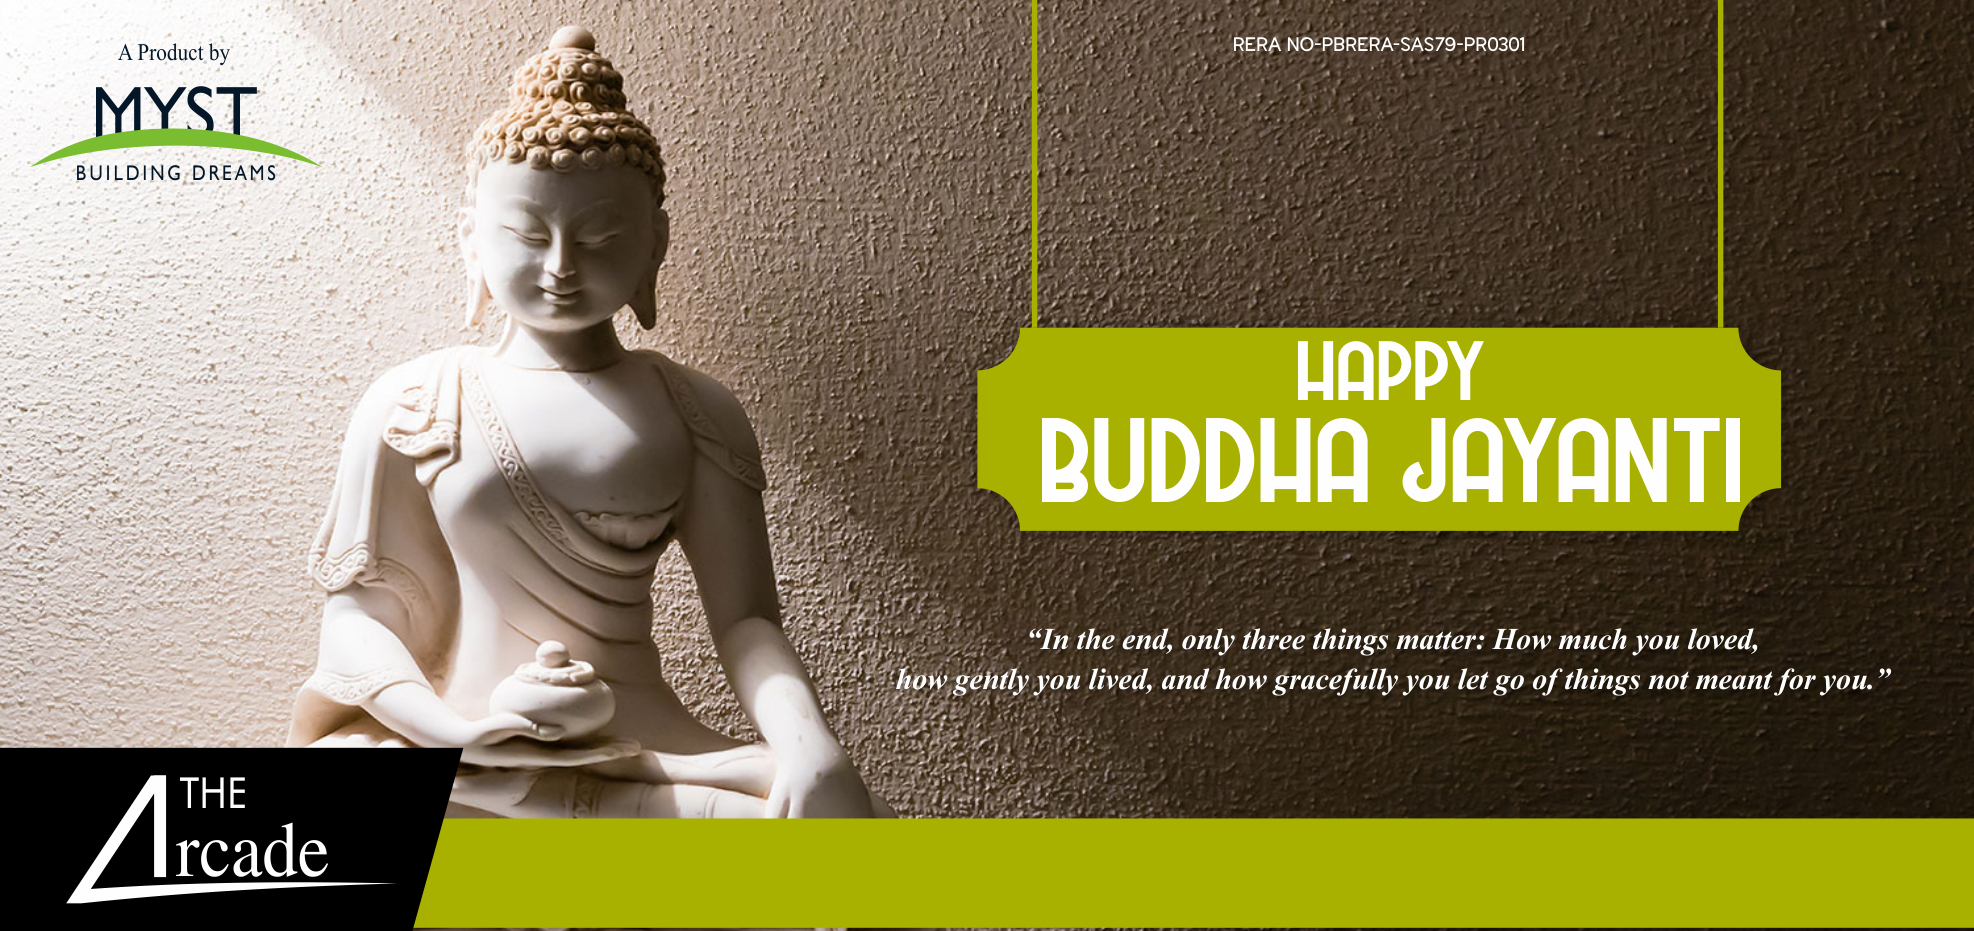 In The End Only Three Things Matter How Much You Loved How Gently You Lived And How Gracefully You Let Go Of Thi Happy Buddha Buddha Jayanti Are You Happy